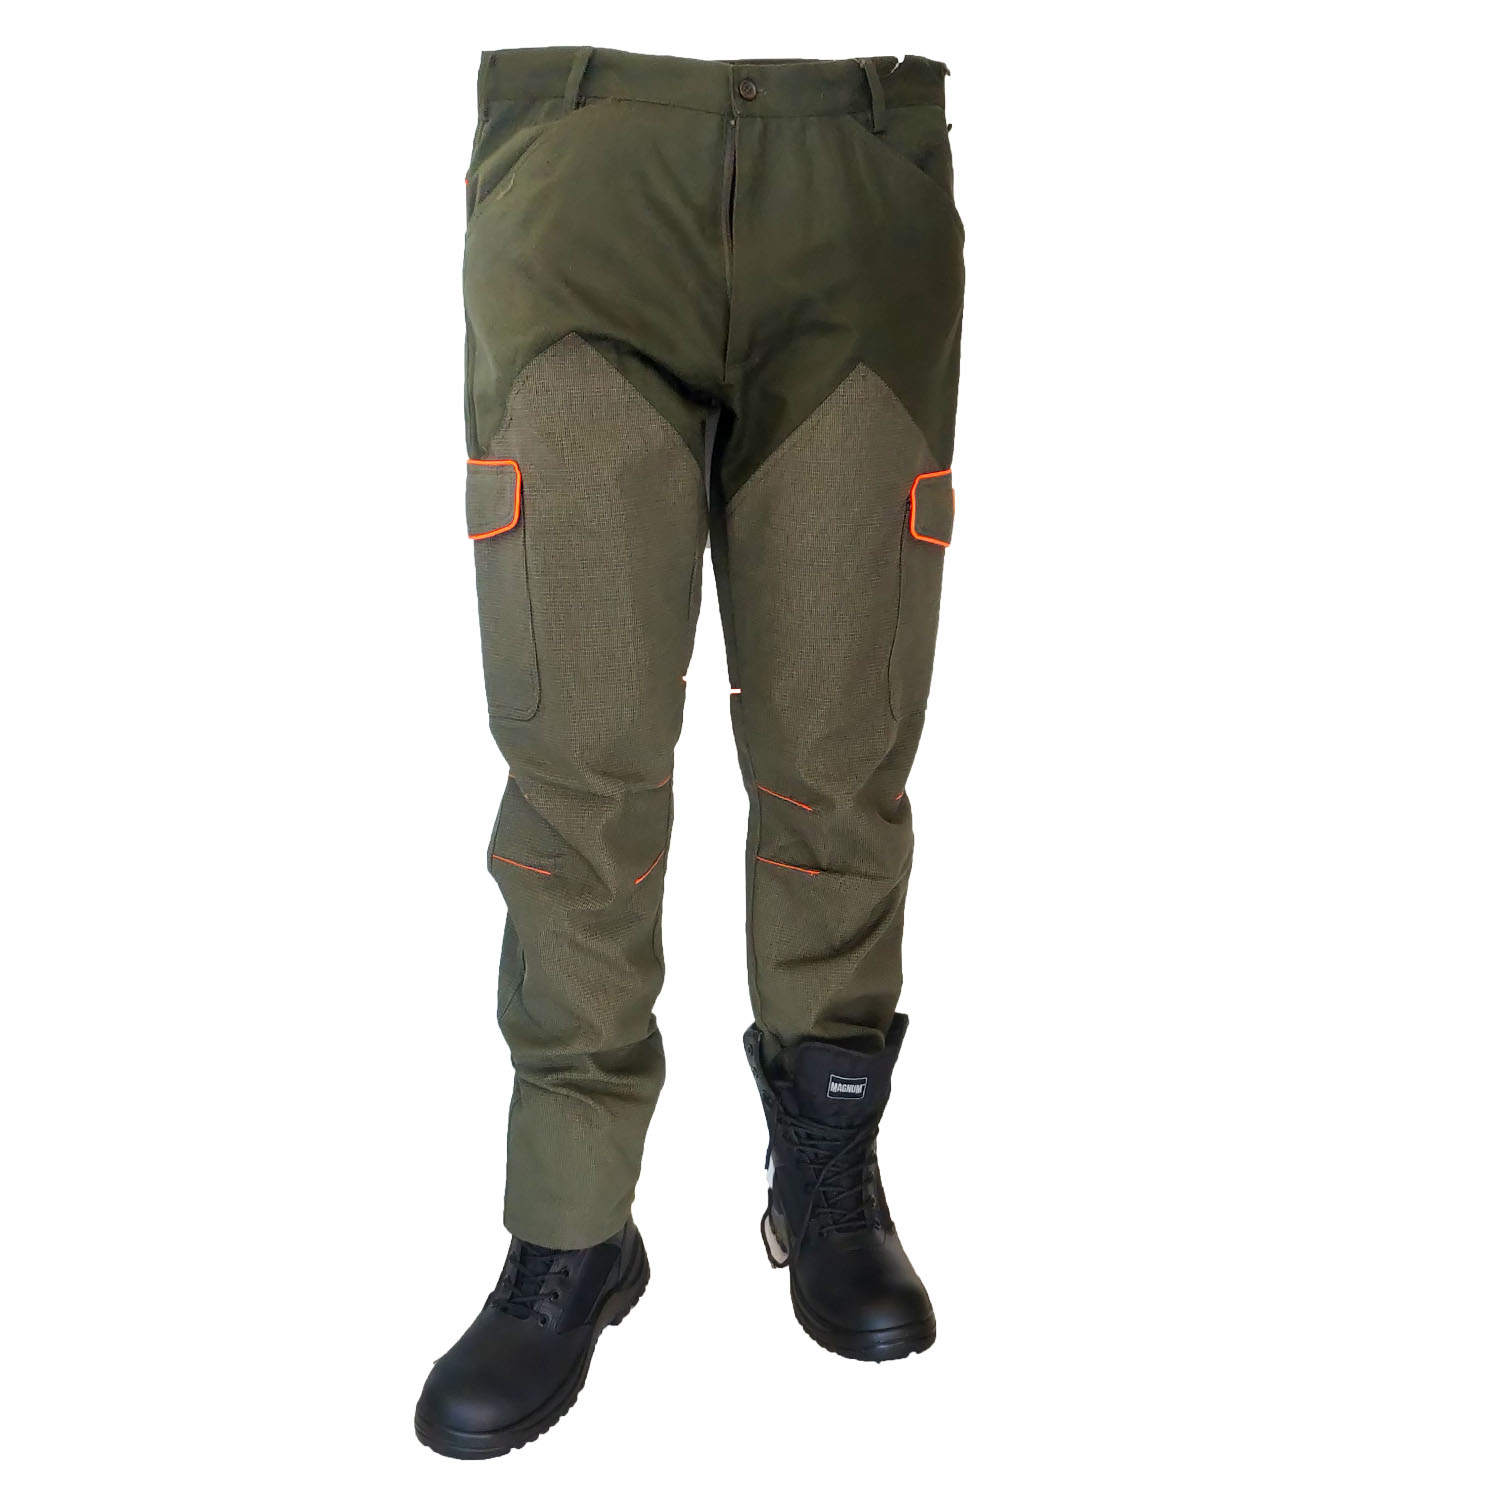 Pants canvas kevlar fishing hunting water-repellent tear-proof, winter